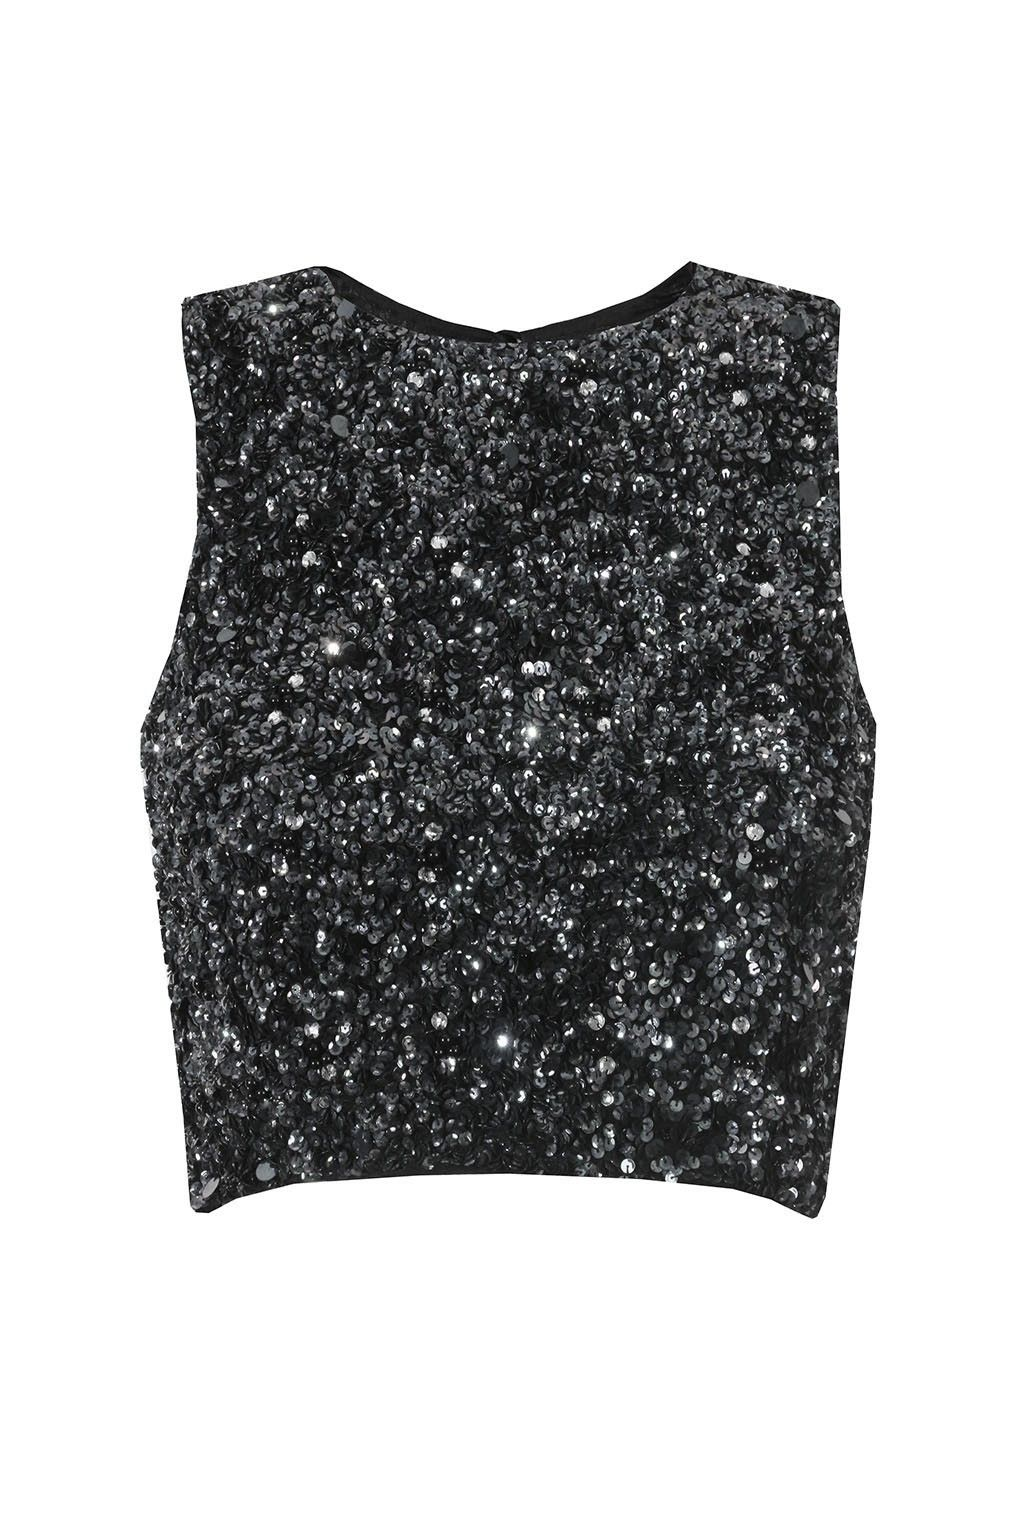 a61fa9beae5d3 Lace   Beads Picasso Black Sequin Top